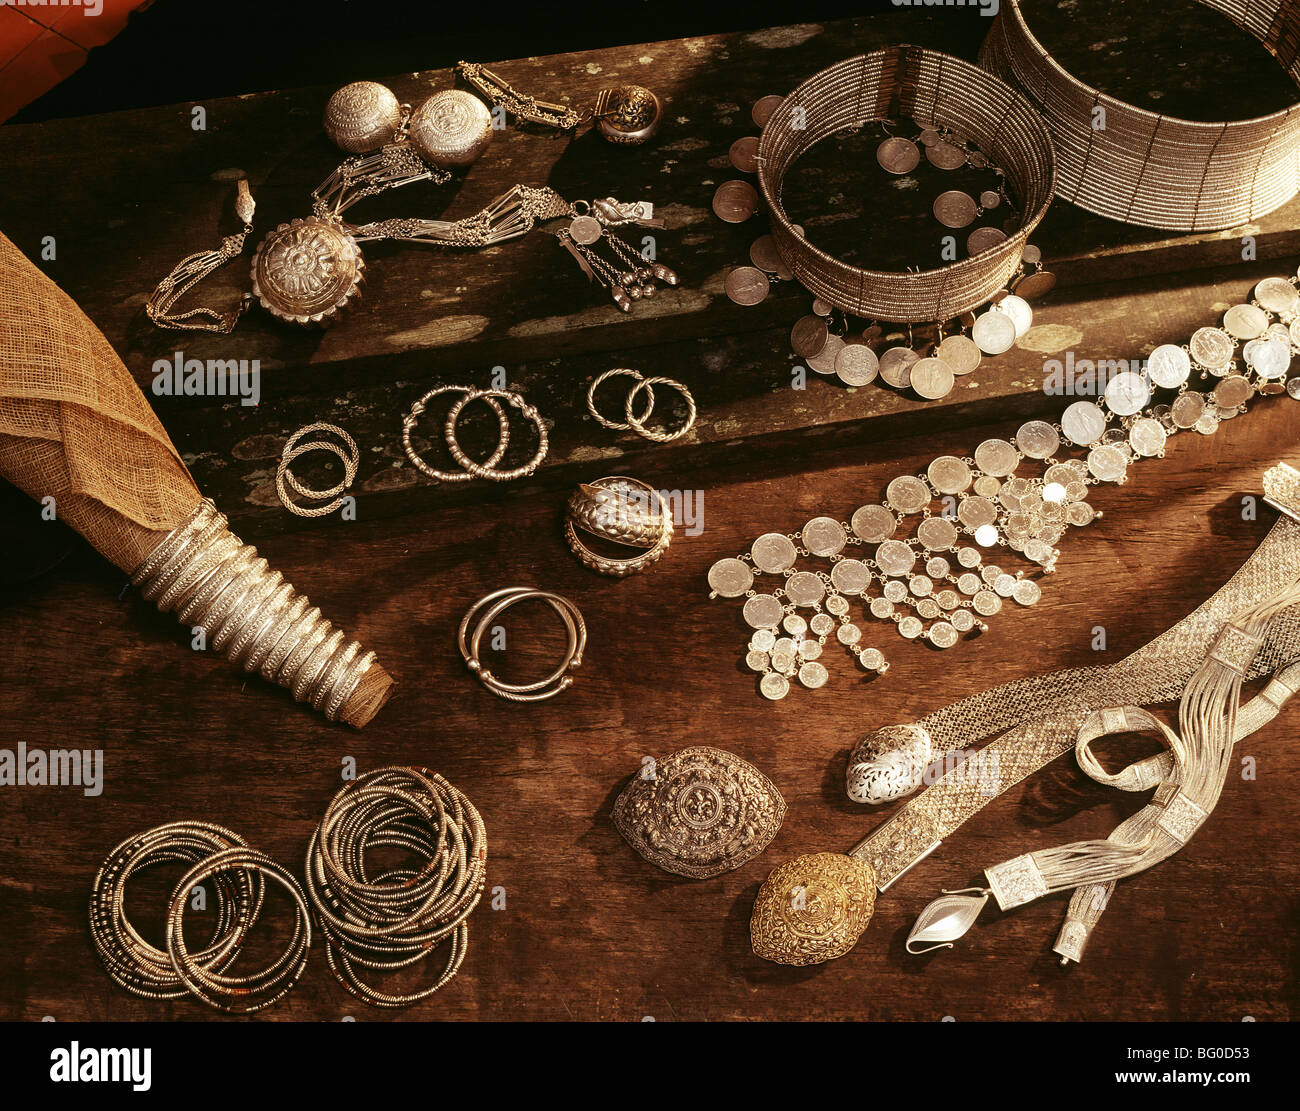 Image result for Iban silver ware